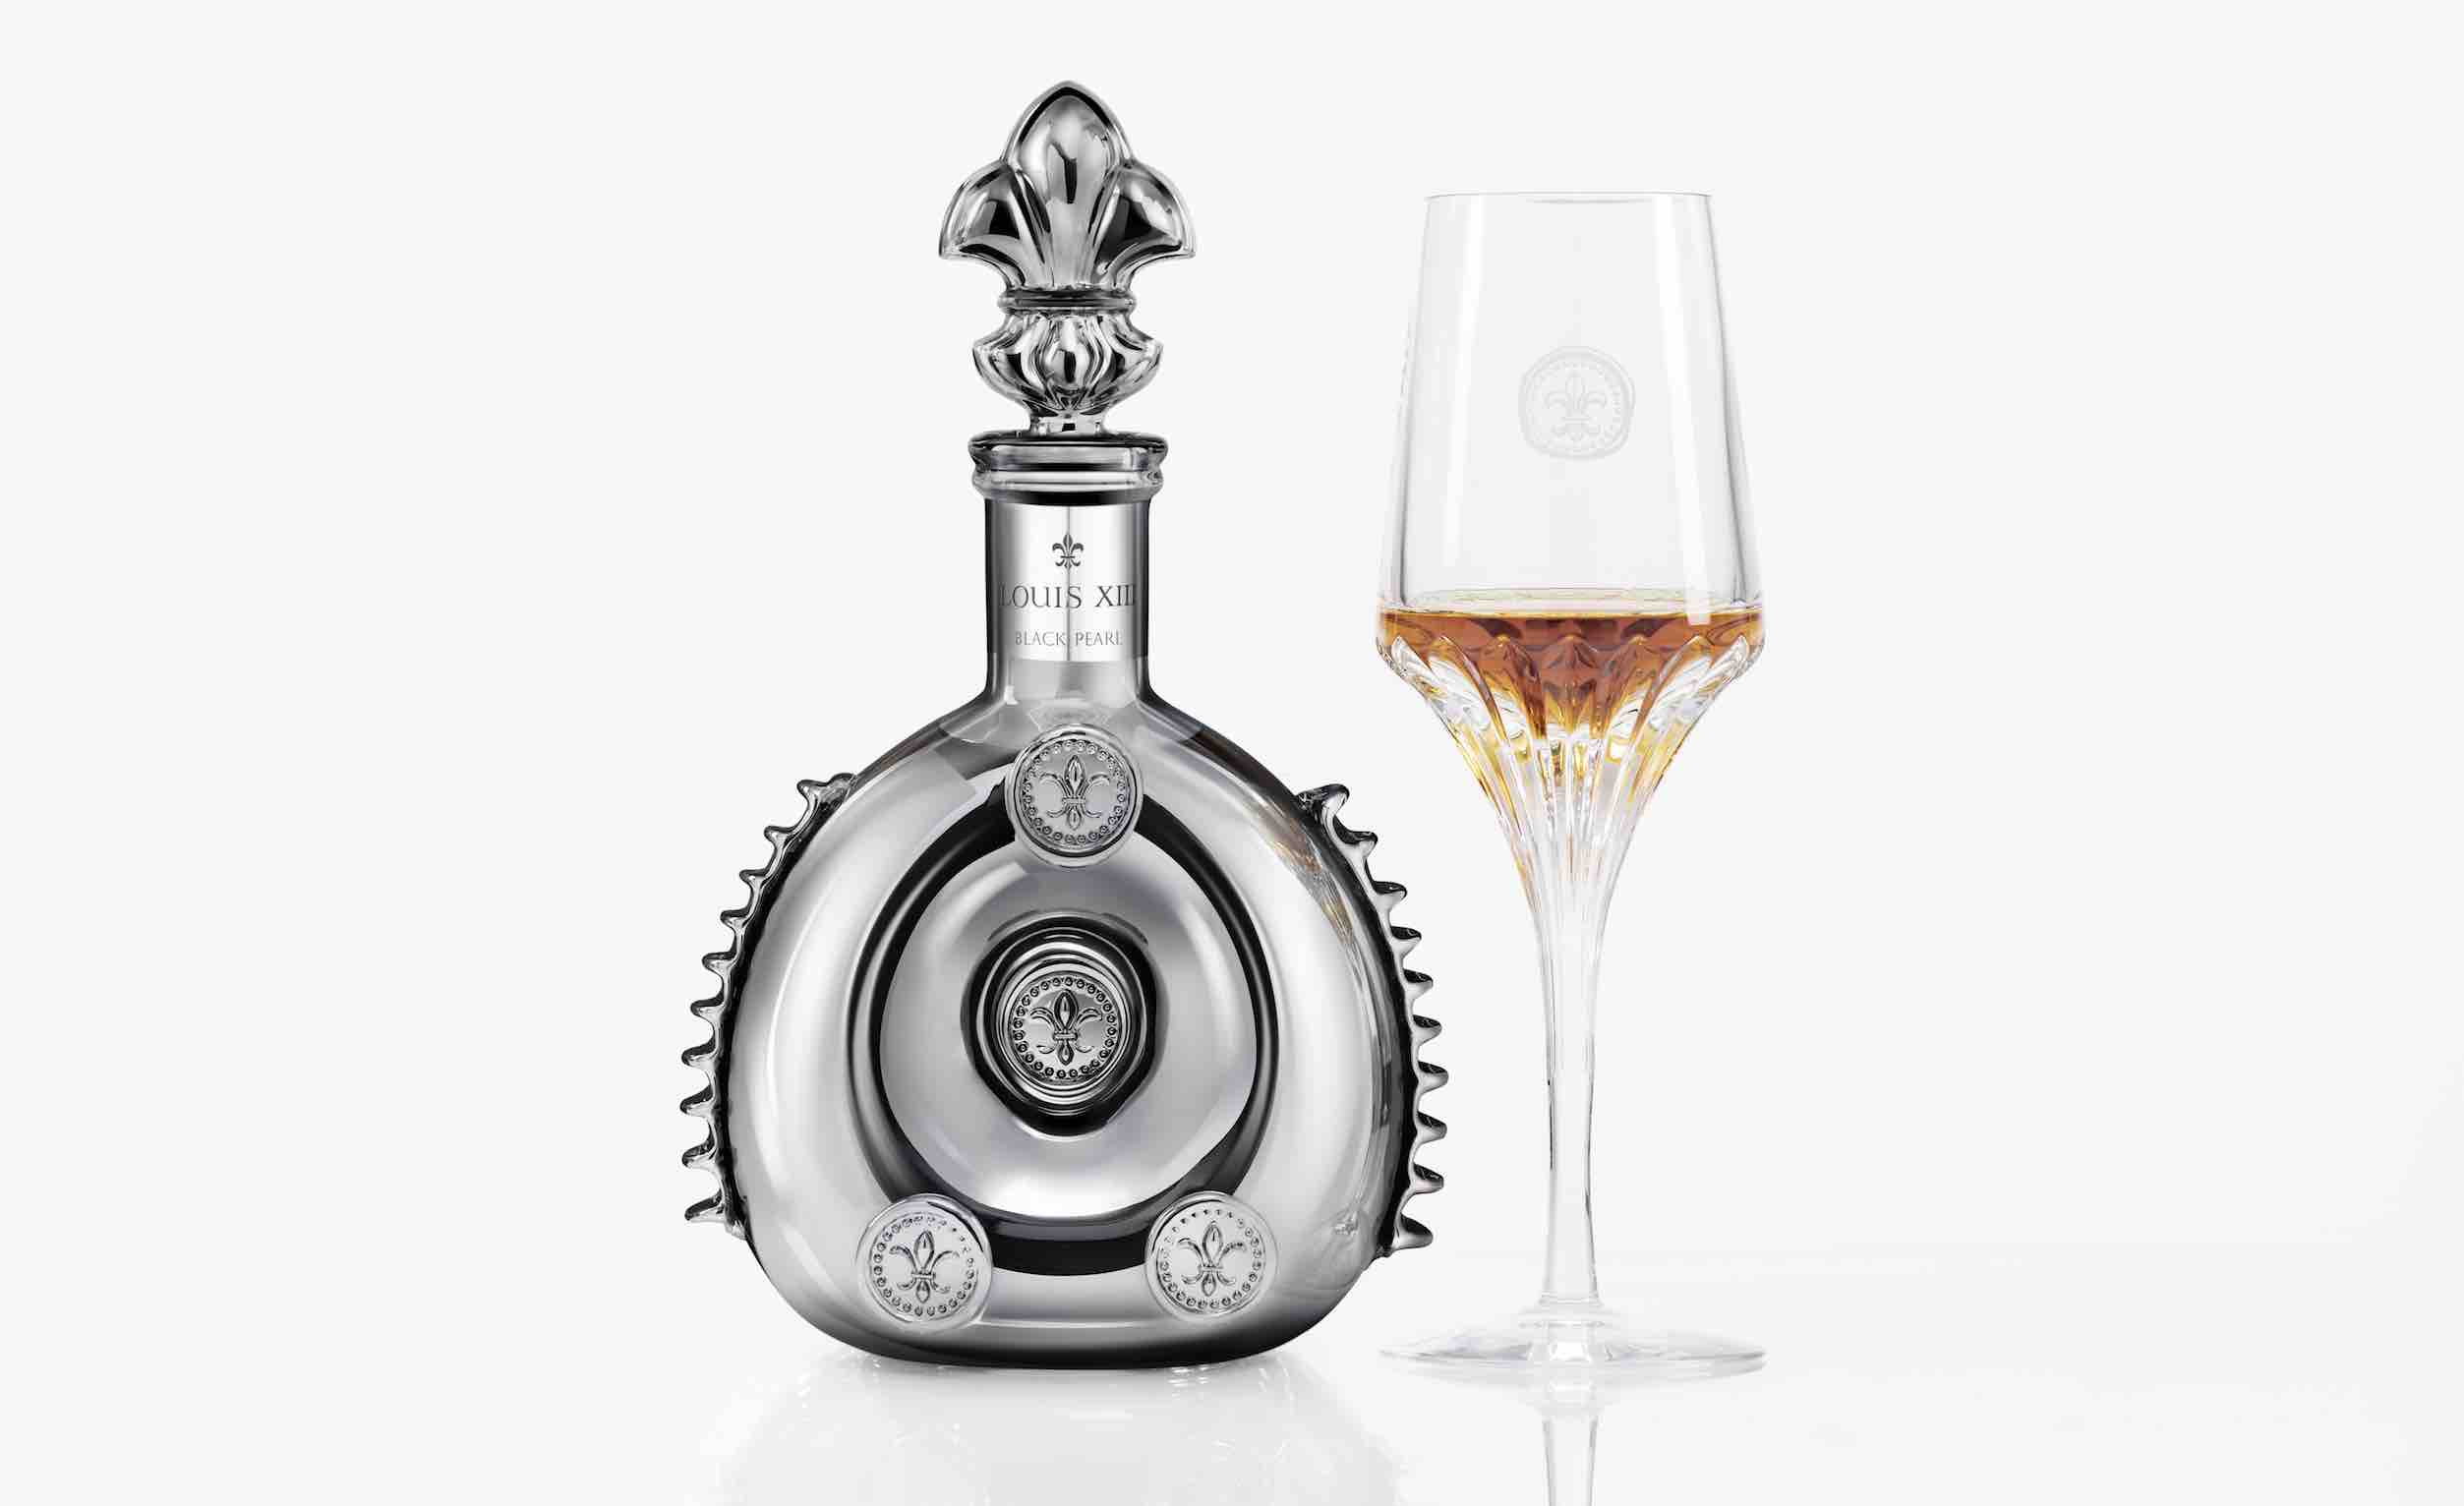 Rémy Martin Louis XIII Black Pearl AHD Cognac: Introducing